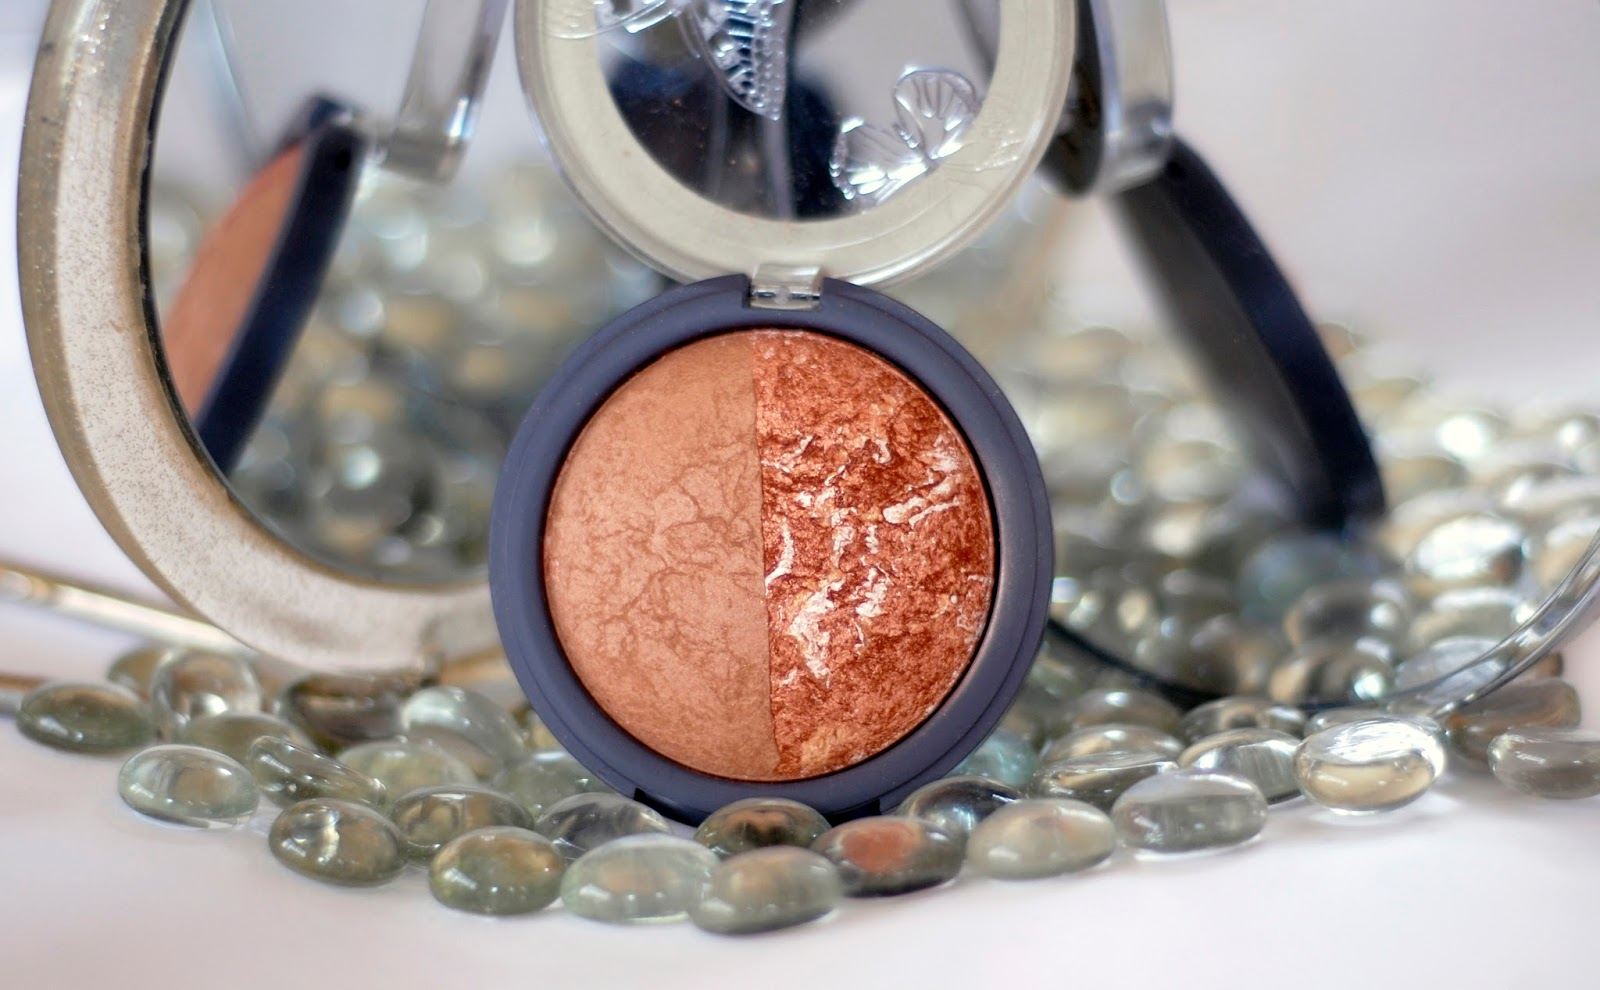 Accessorize Baked Bronzer Duo in Bali